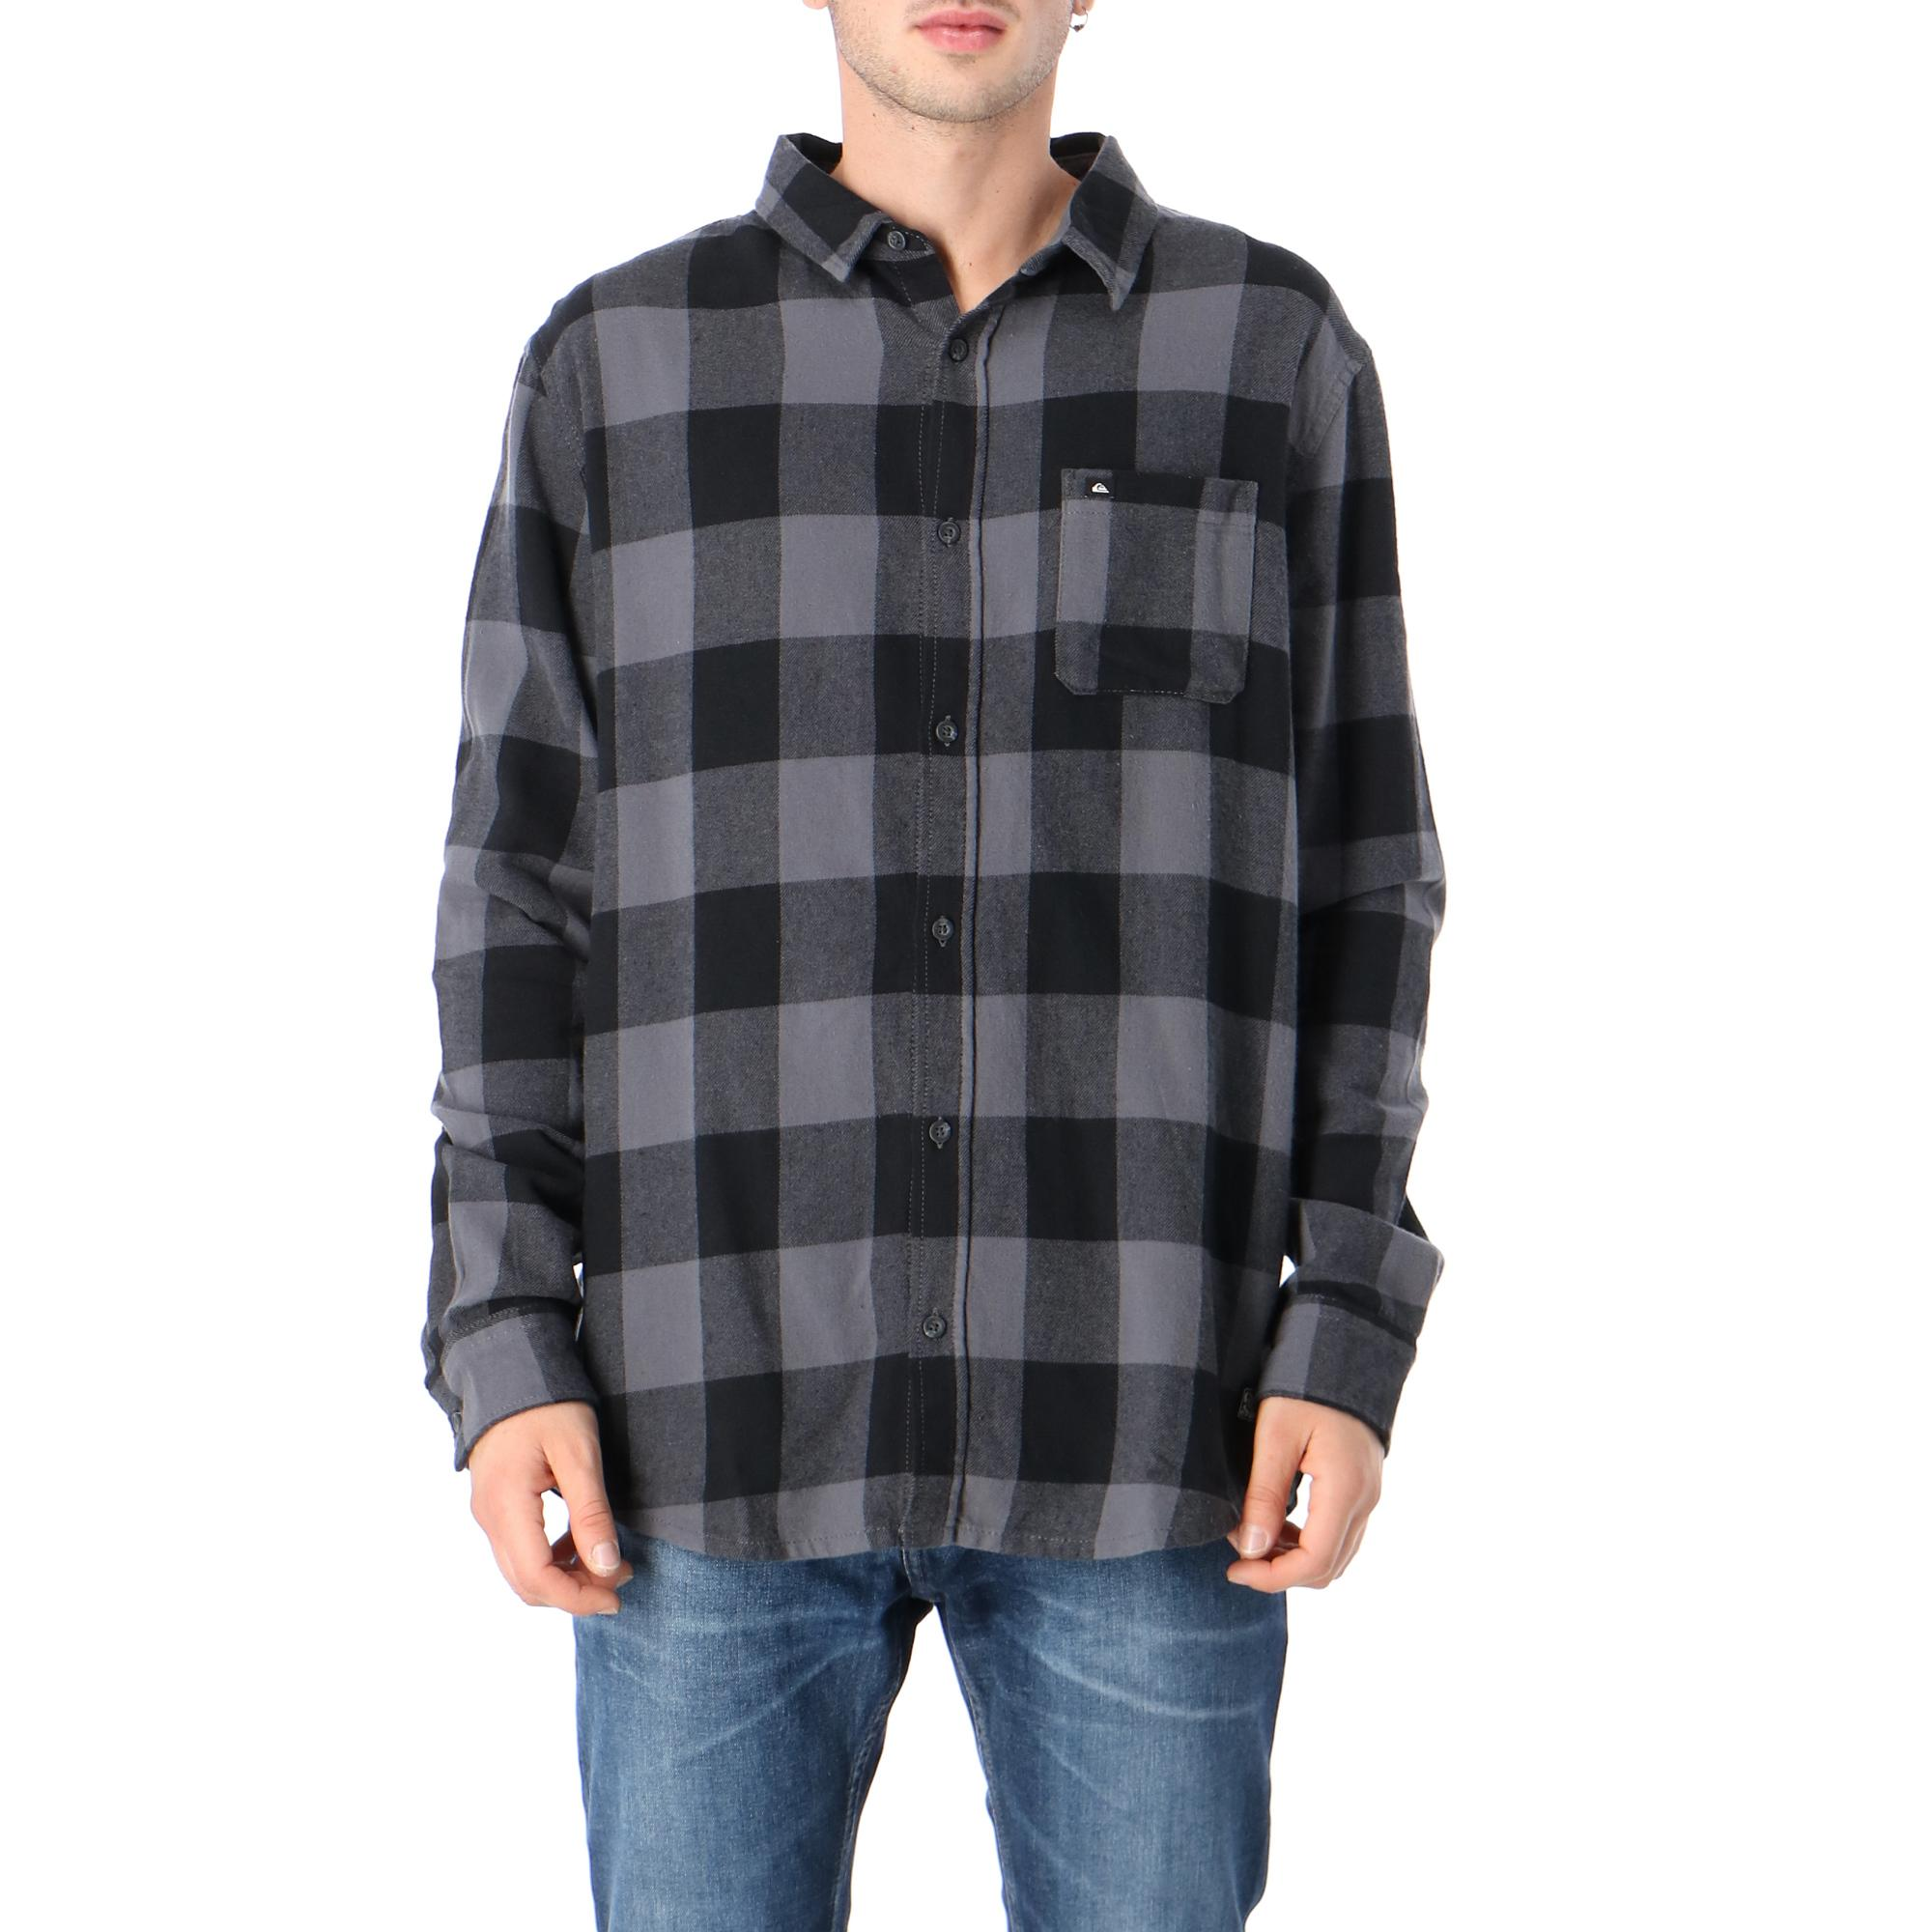 Quiksilver Motherfly Flannel Irongate motherfly